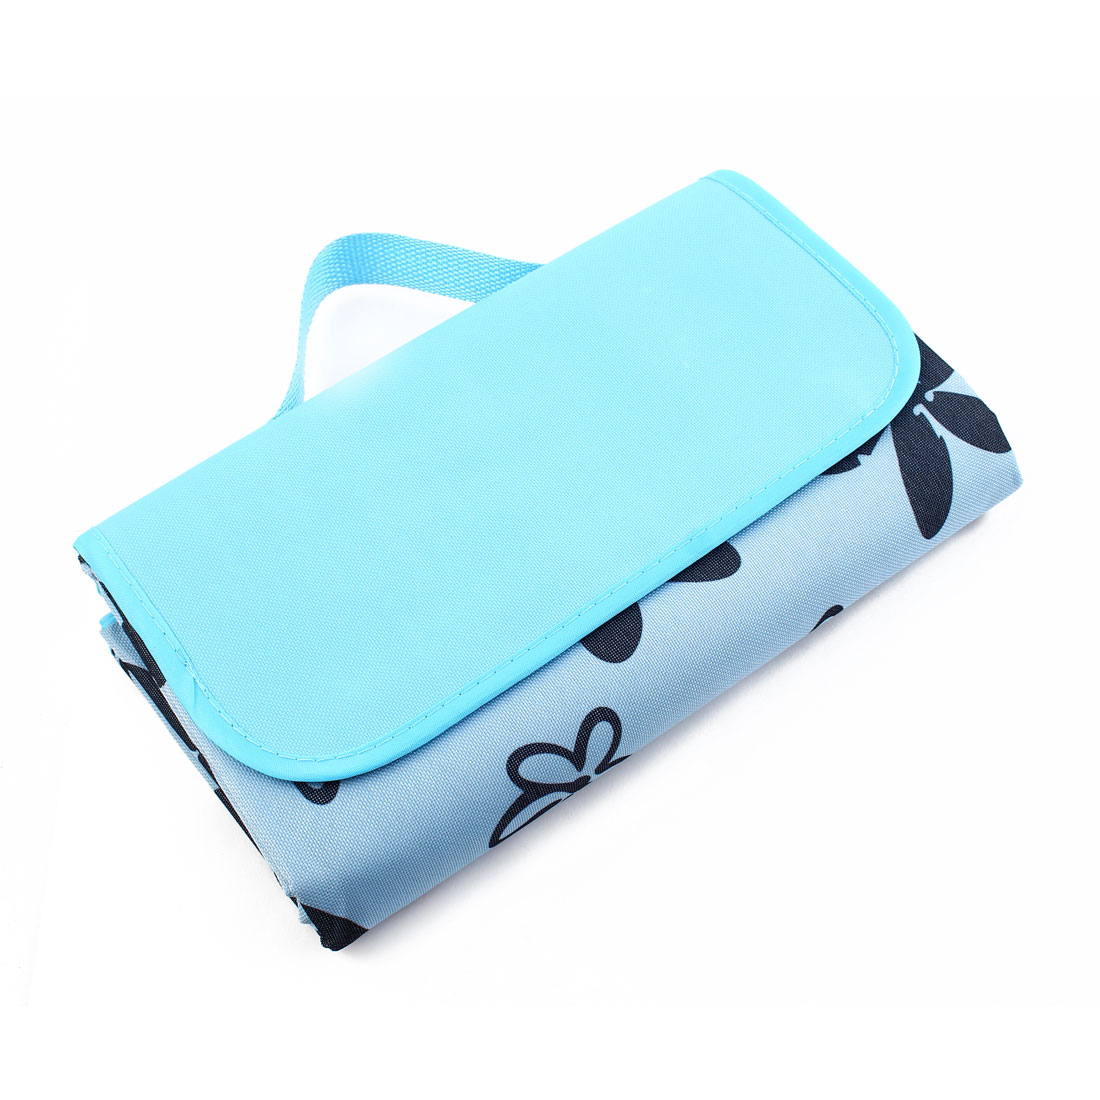 Travel Outdoor Floral Pattern Water Resistant Pad Foldable Picnic Blanket Portable Camping Mat